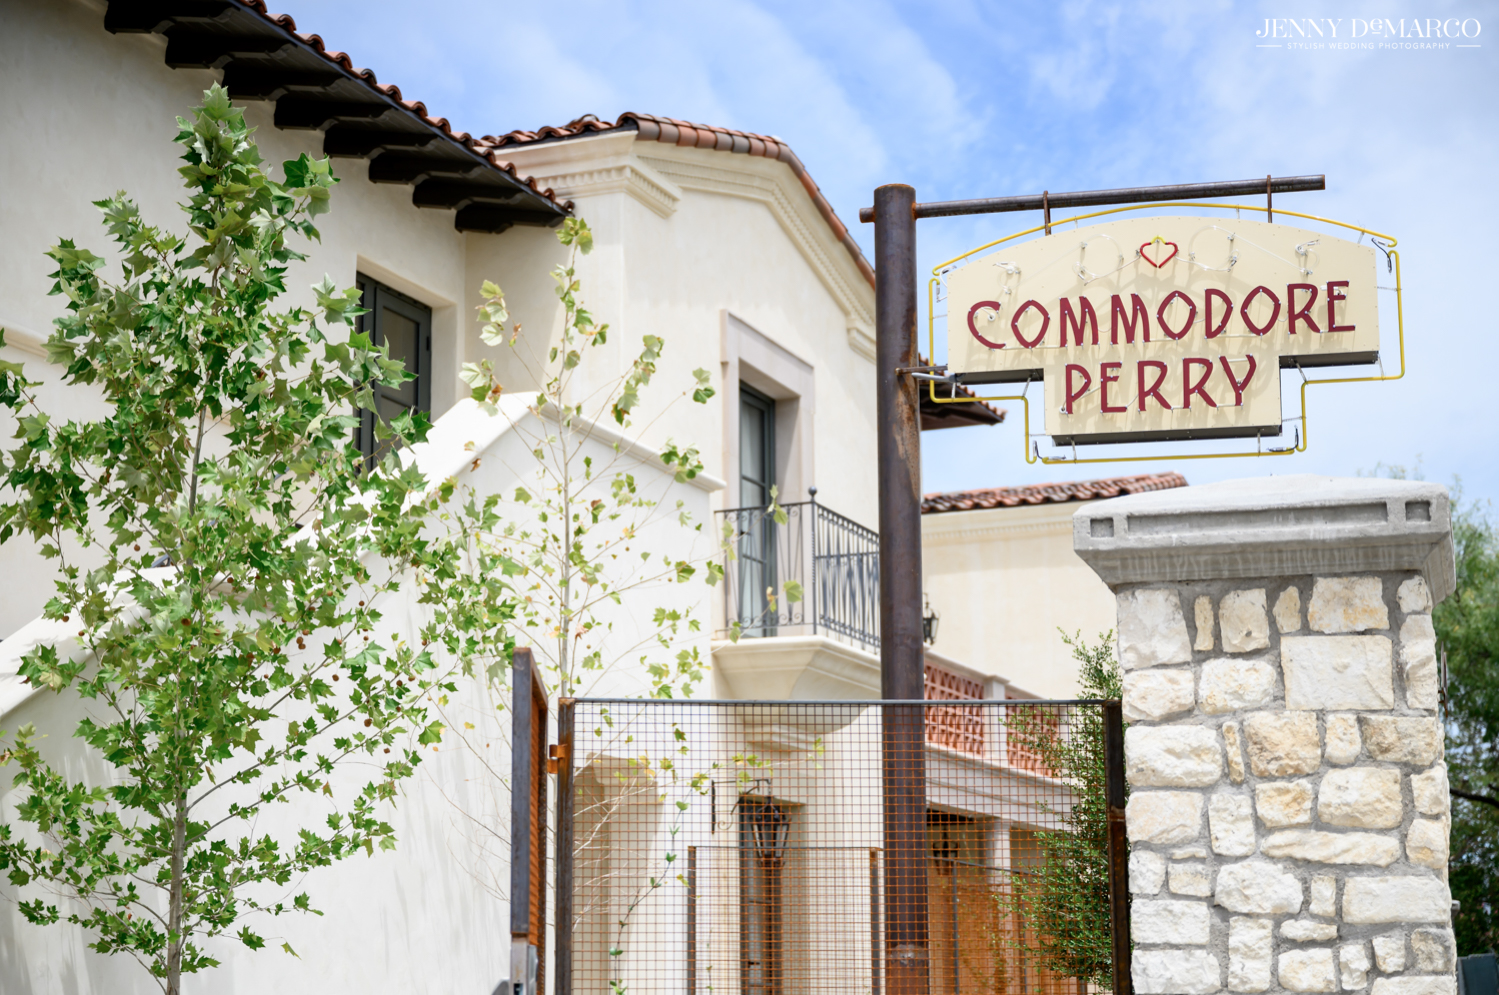 Commodore Perry Hotel in Austin, Texas